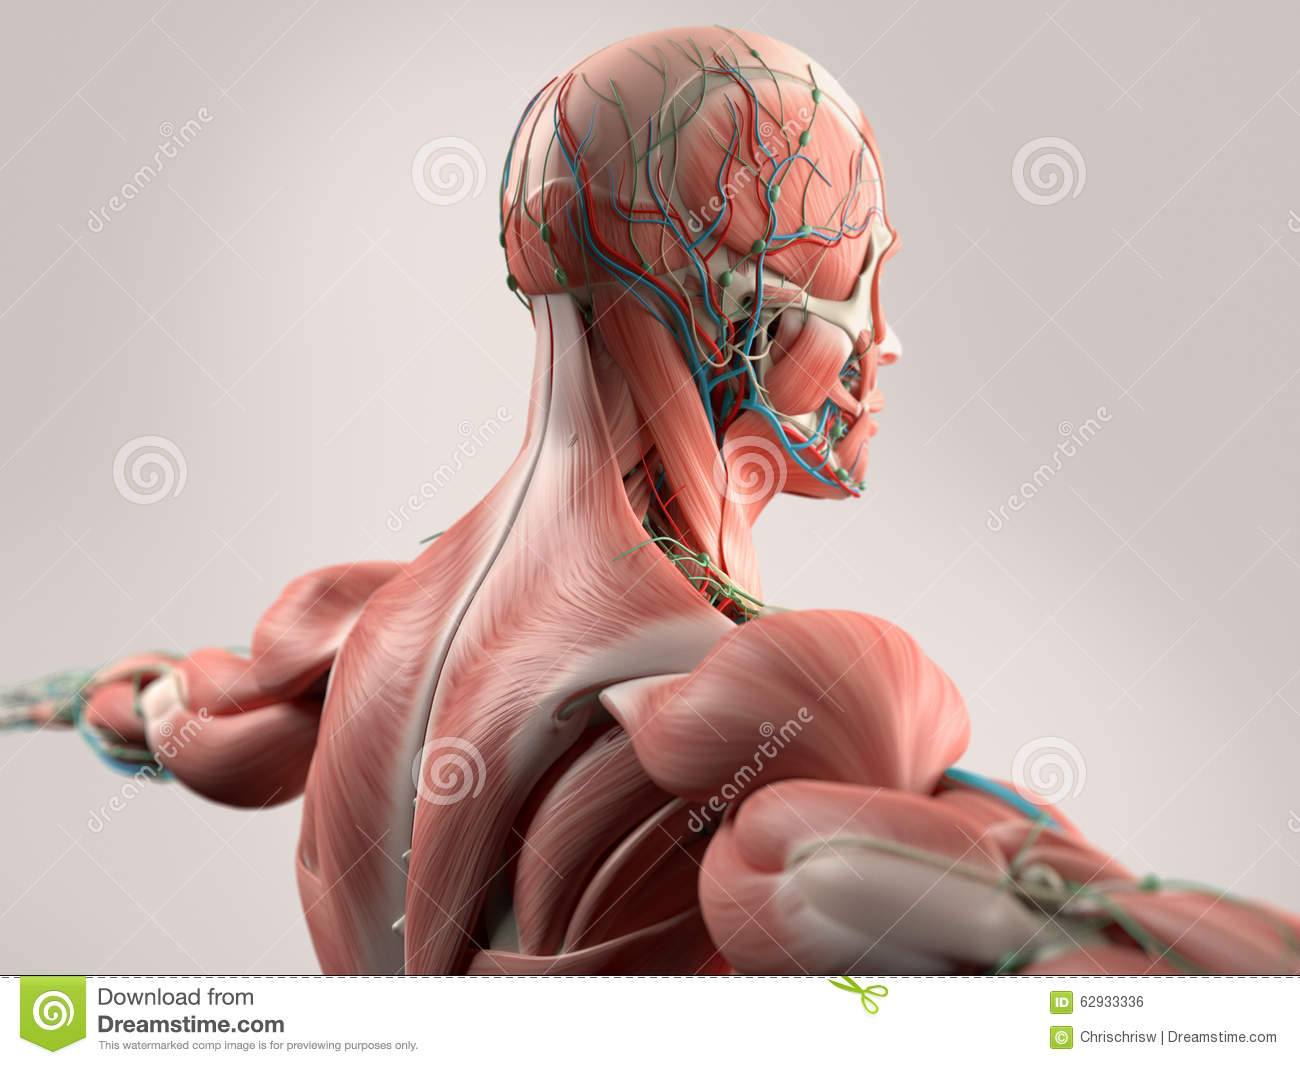 Human Anatomy Showing Face, Head, Shoulders And Back. Stock ...